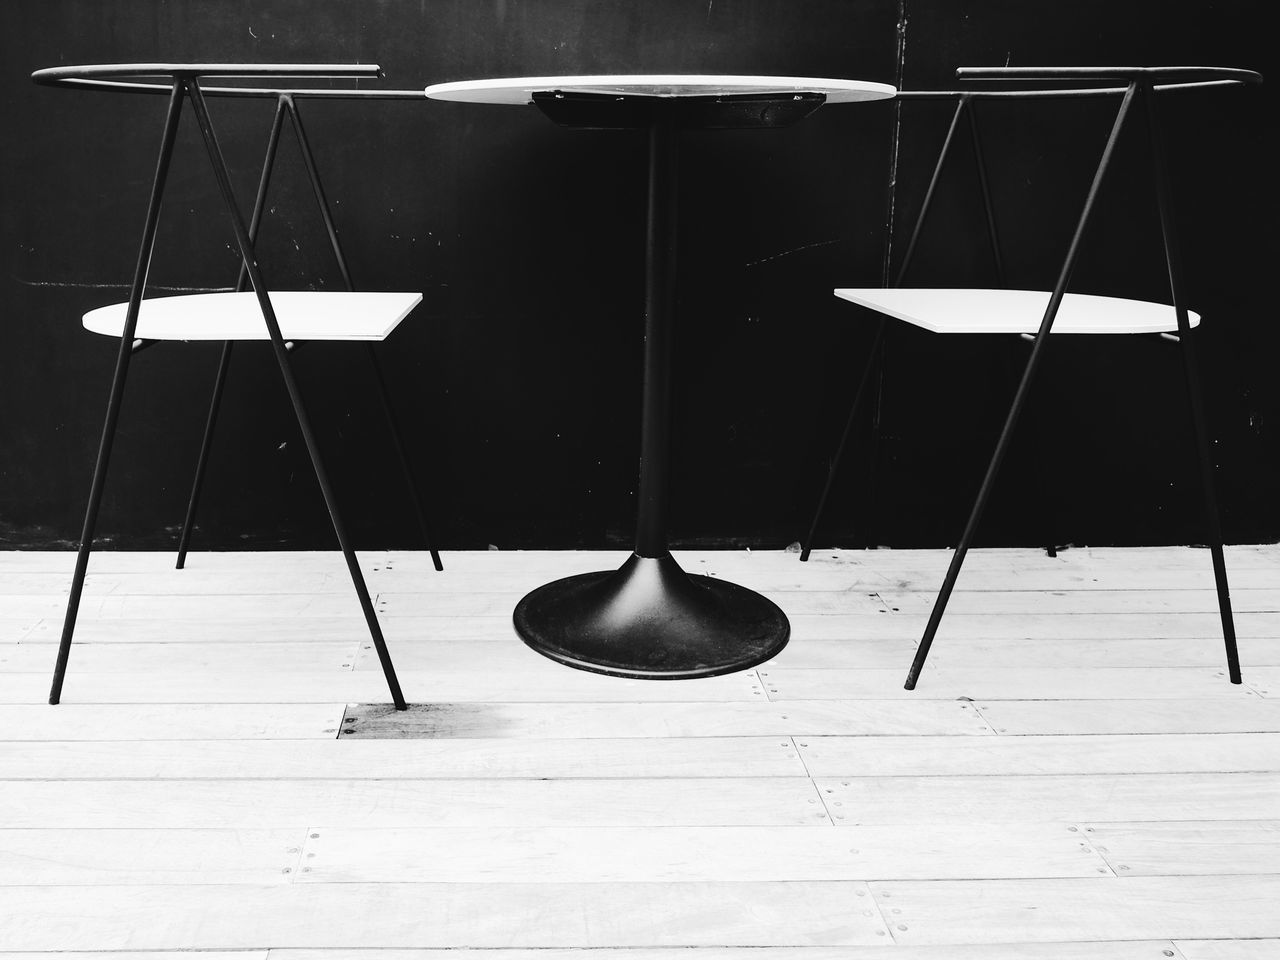 Table No People Day Outdoors Furnitures Design Minimal Chair Blackandwhite Minimalism Modern Art Furniture Design Table Setting Lines And Shapes Exterior Restaurant Decoration Simplicity Style